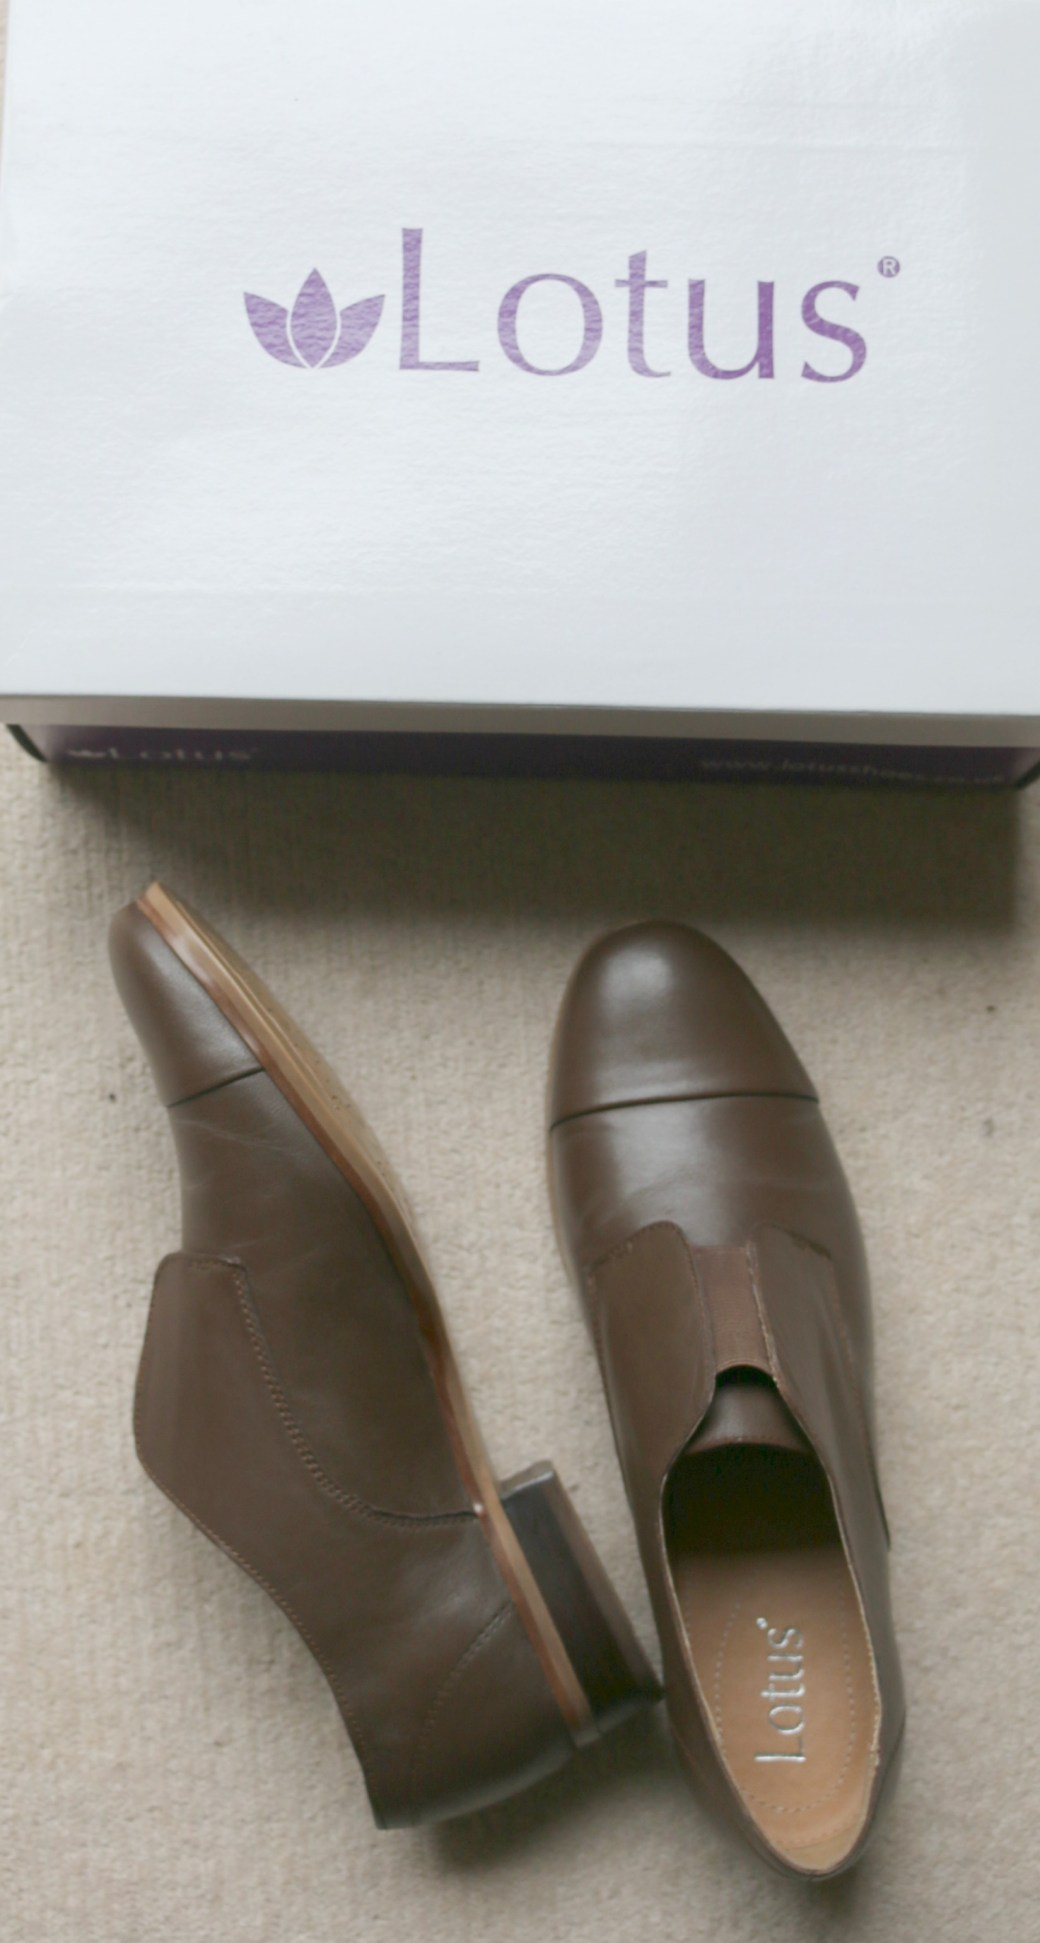 Lotus Drake flat shoes from House of Fraser